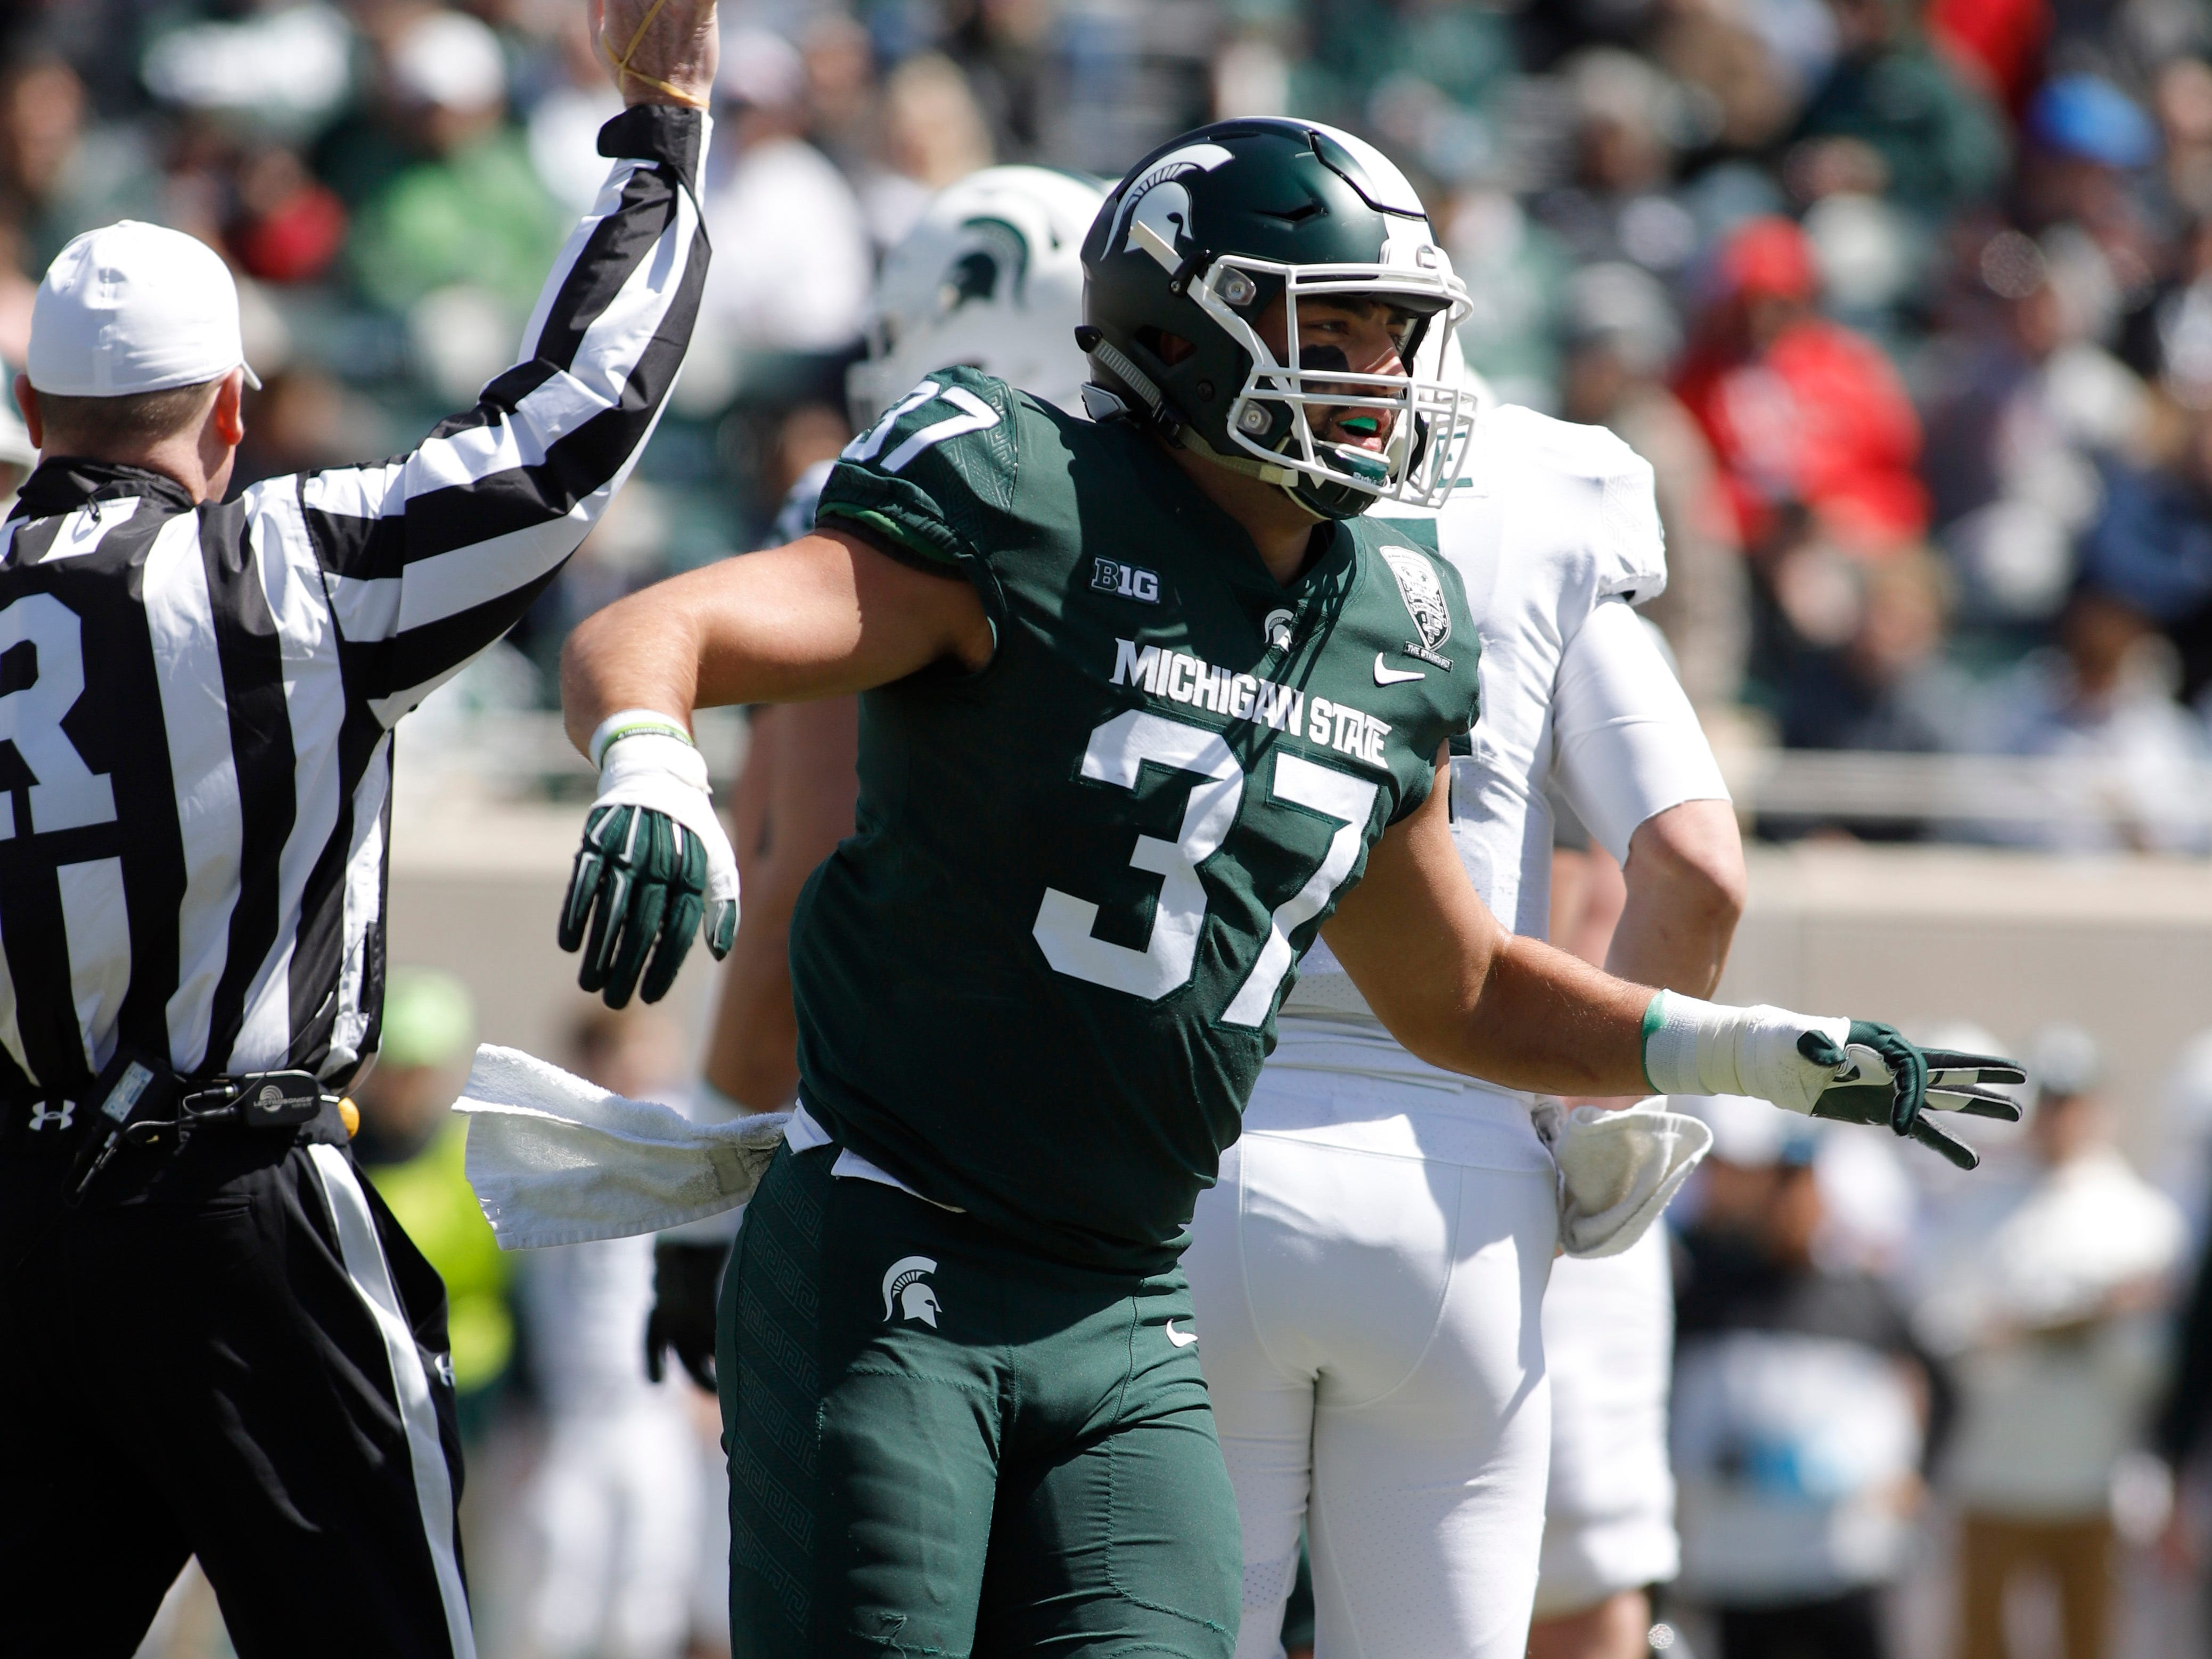 Michigan State's Dante Razzano celebrates a play during an NCAA college football spring scrimmage game, Saturday, April 13, 2019, in East Lansing, Mich. (AP Photo/Al Goldis)